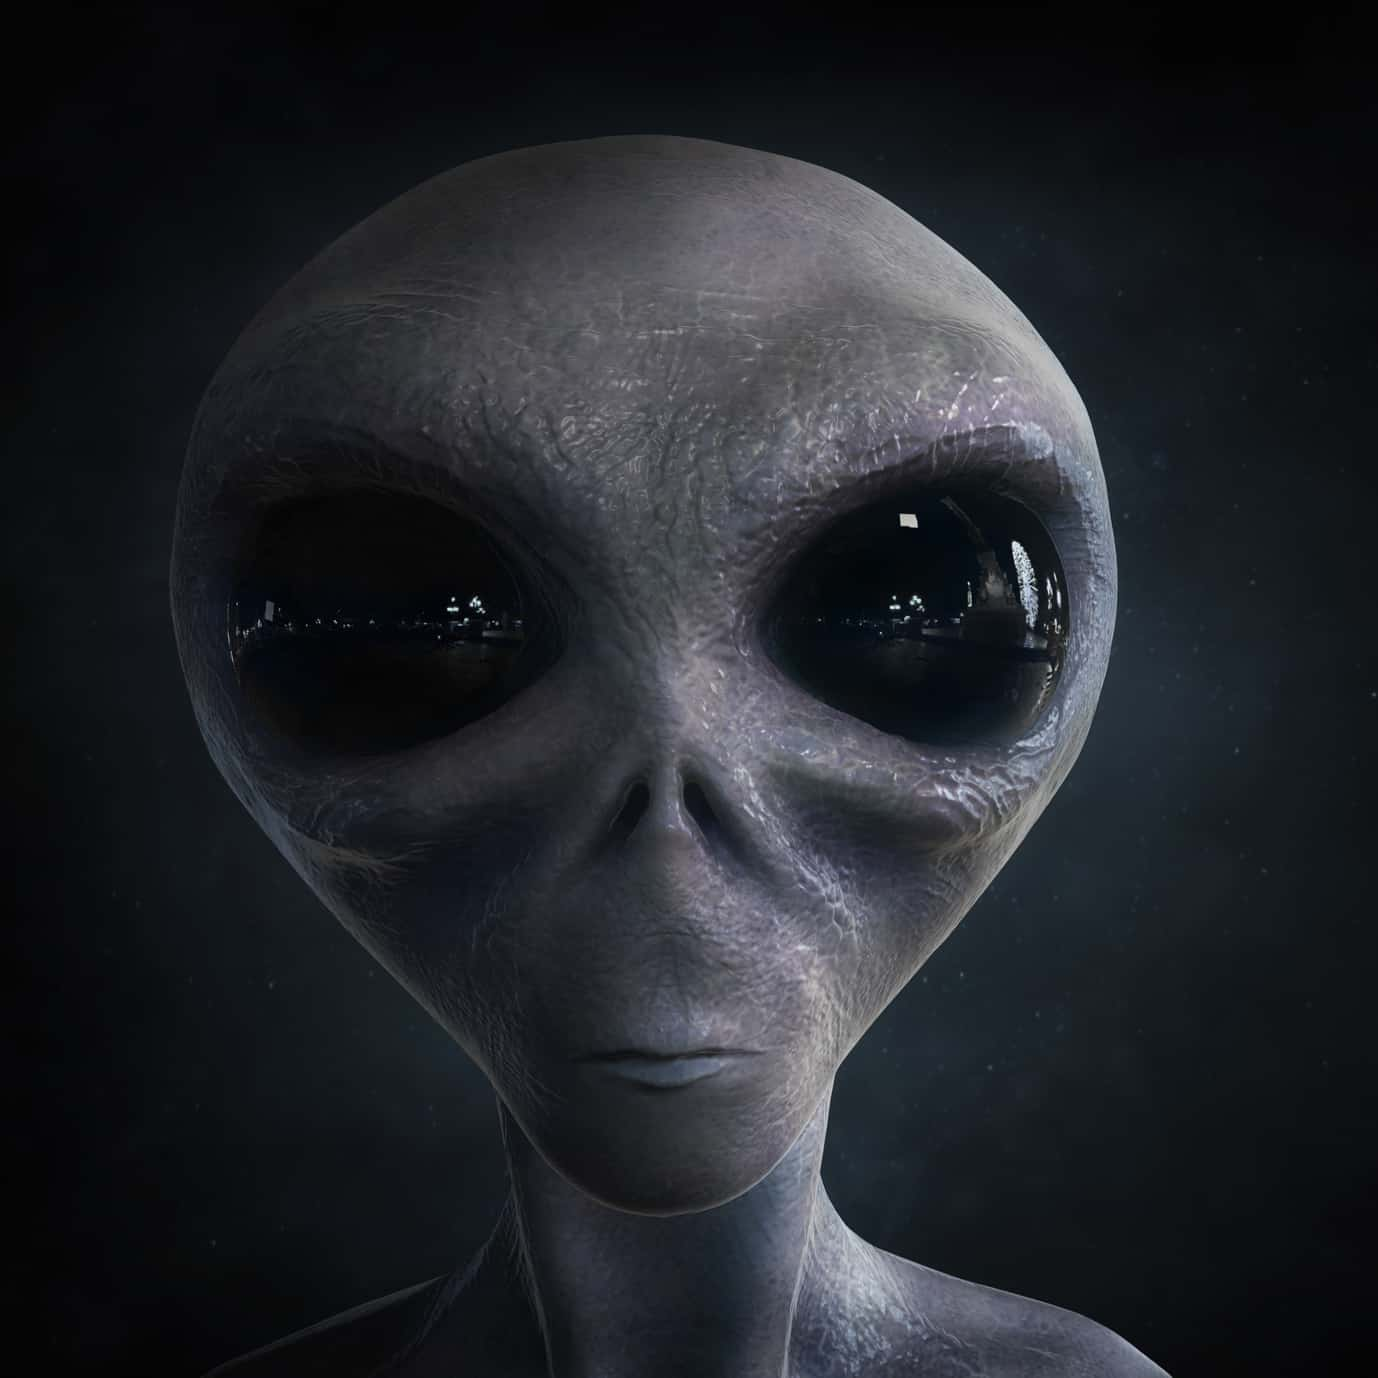 Alien Infiltration: Could It Be True?